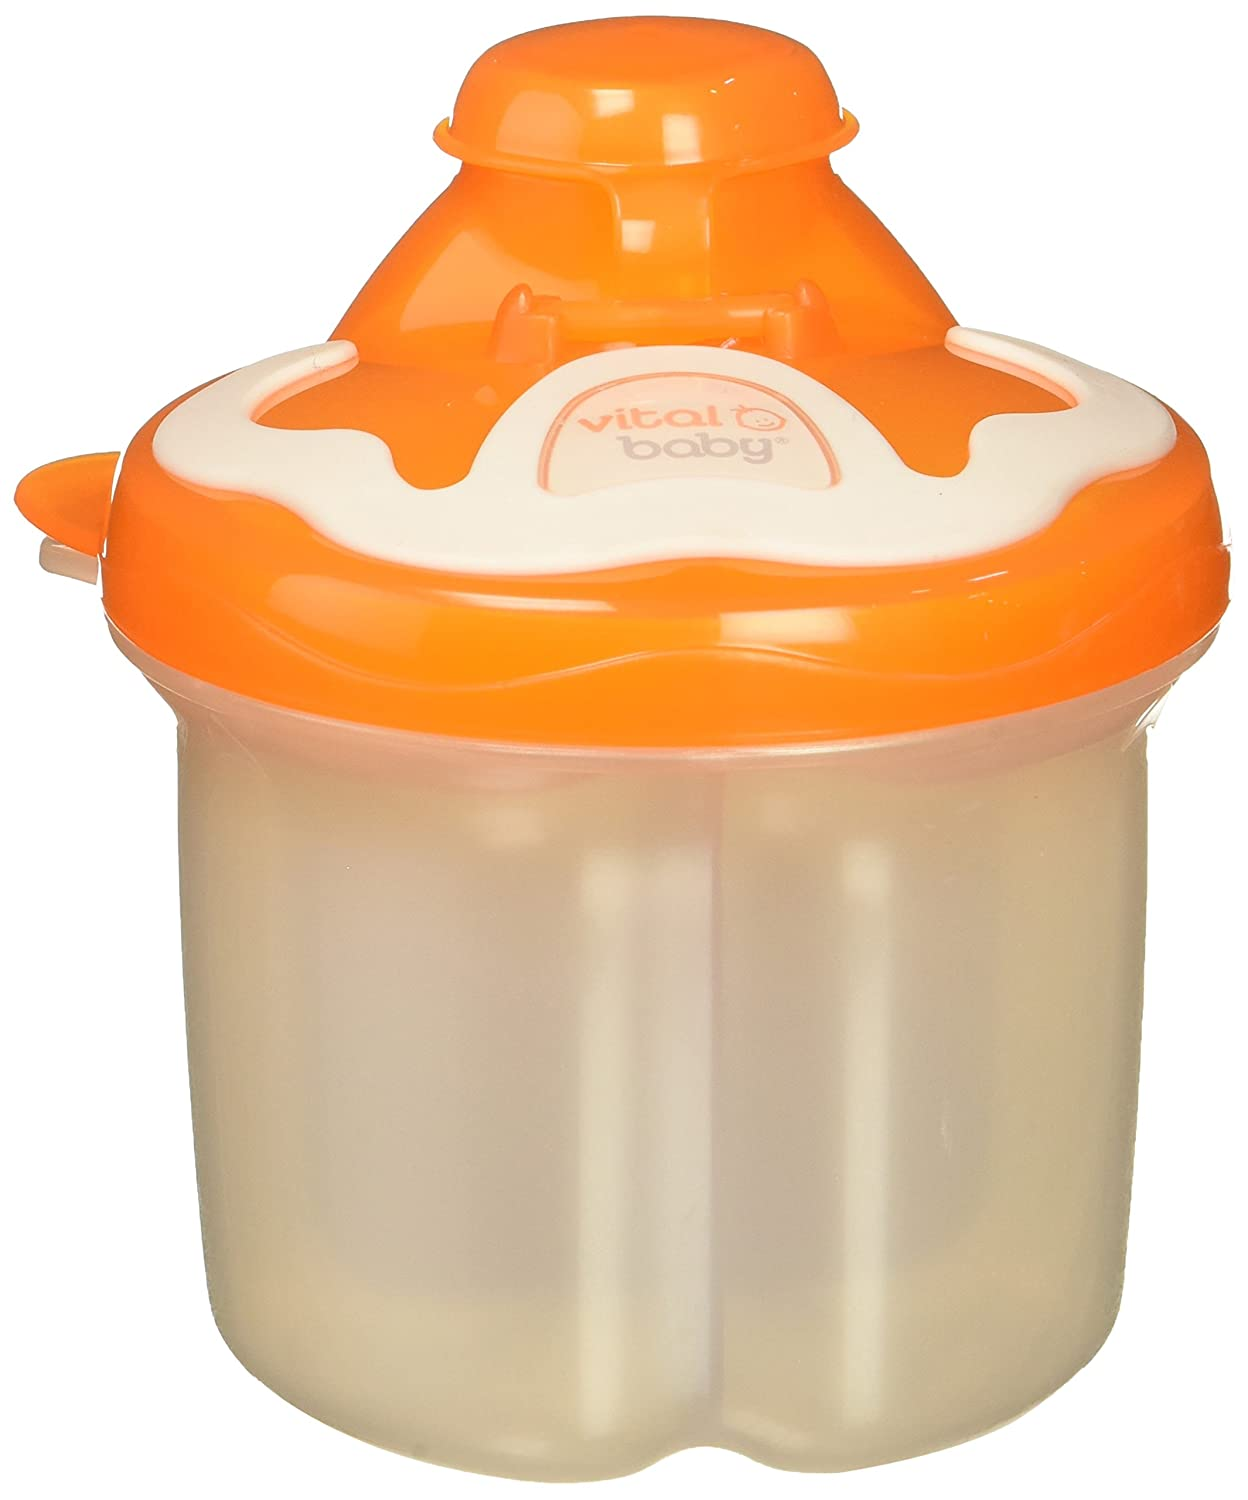 Vital Baby Formula Dispenser in Powder Storage with 3 Revolving Compartments and Also Perfect for Snacks, Orange